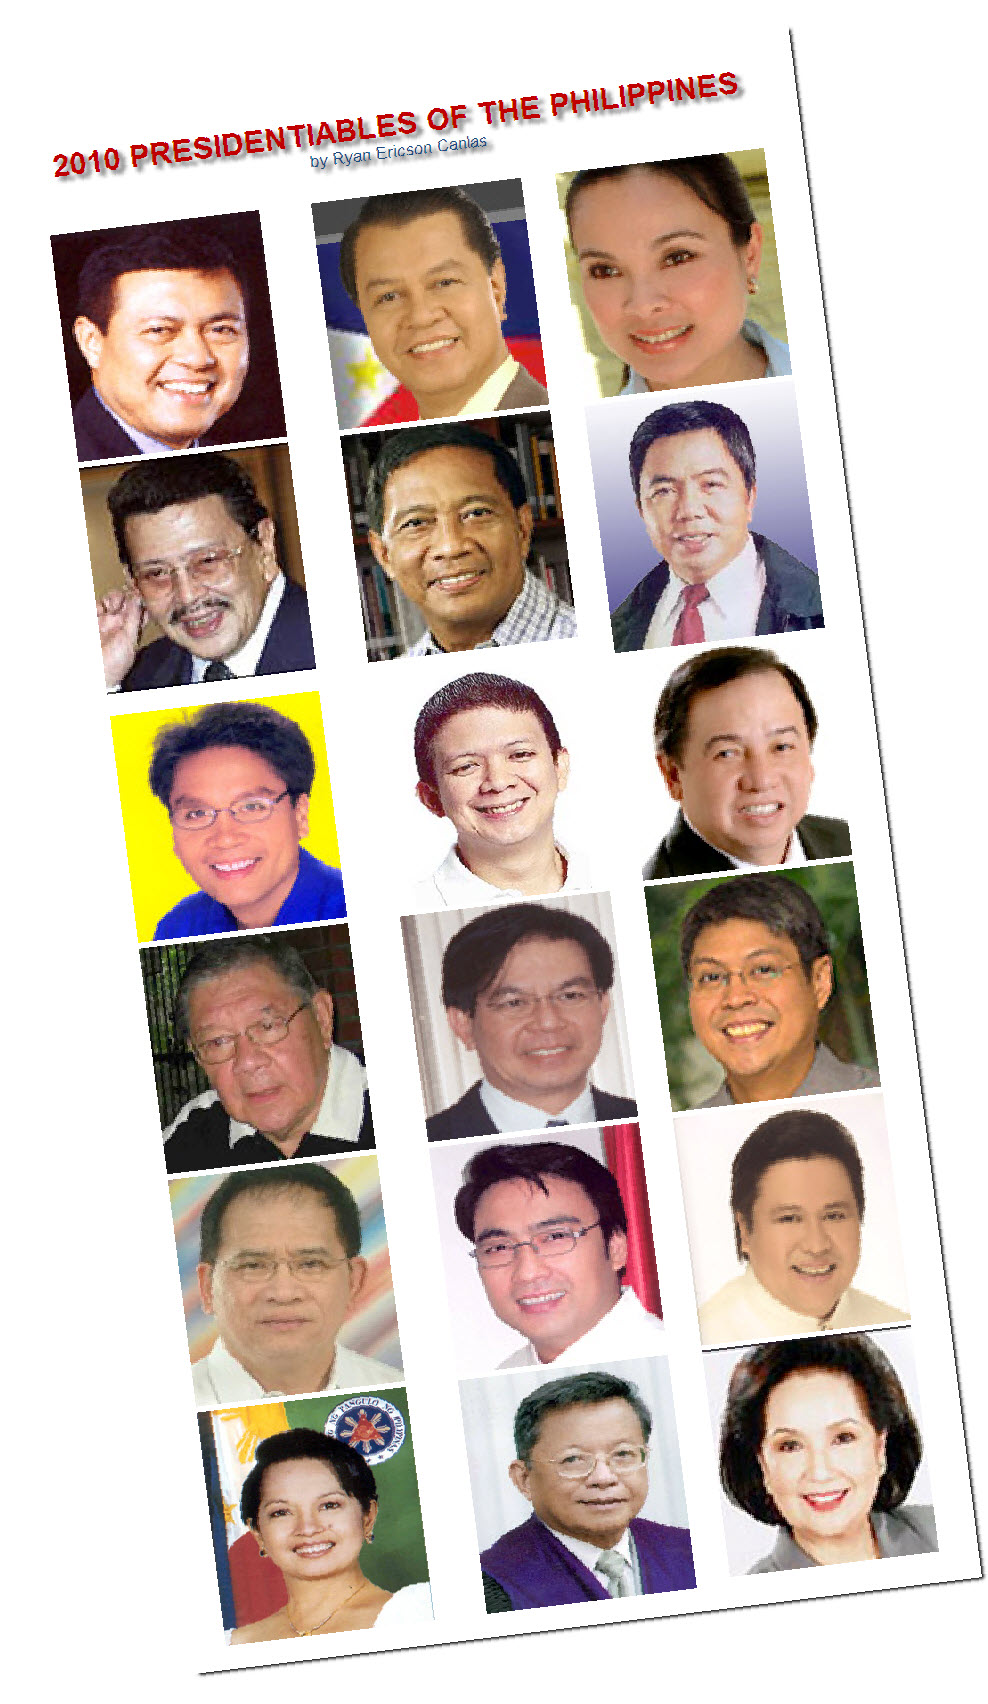 http://ryanericsongcanlas.files.wordpress.com/2009/03/presidentiables.jpg